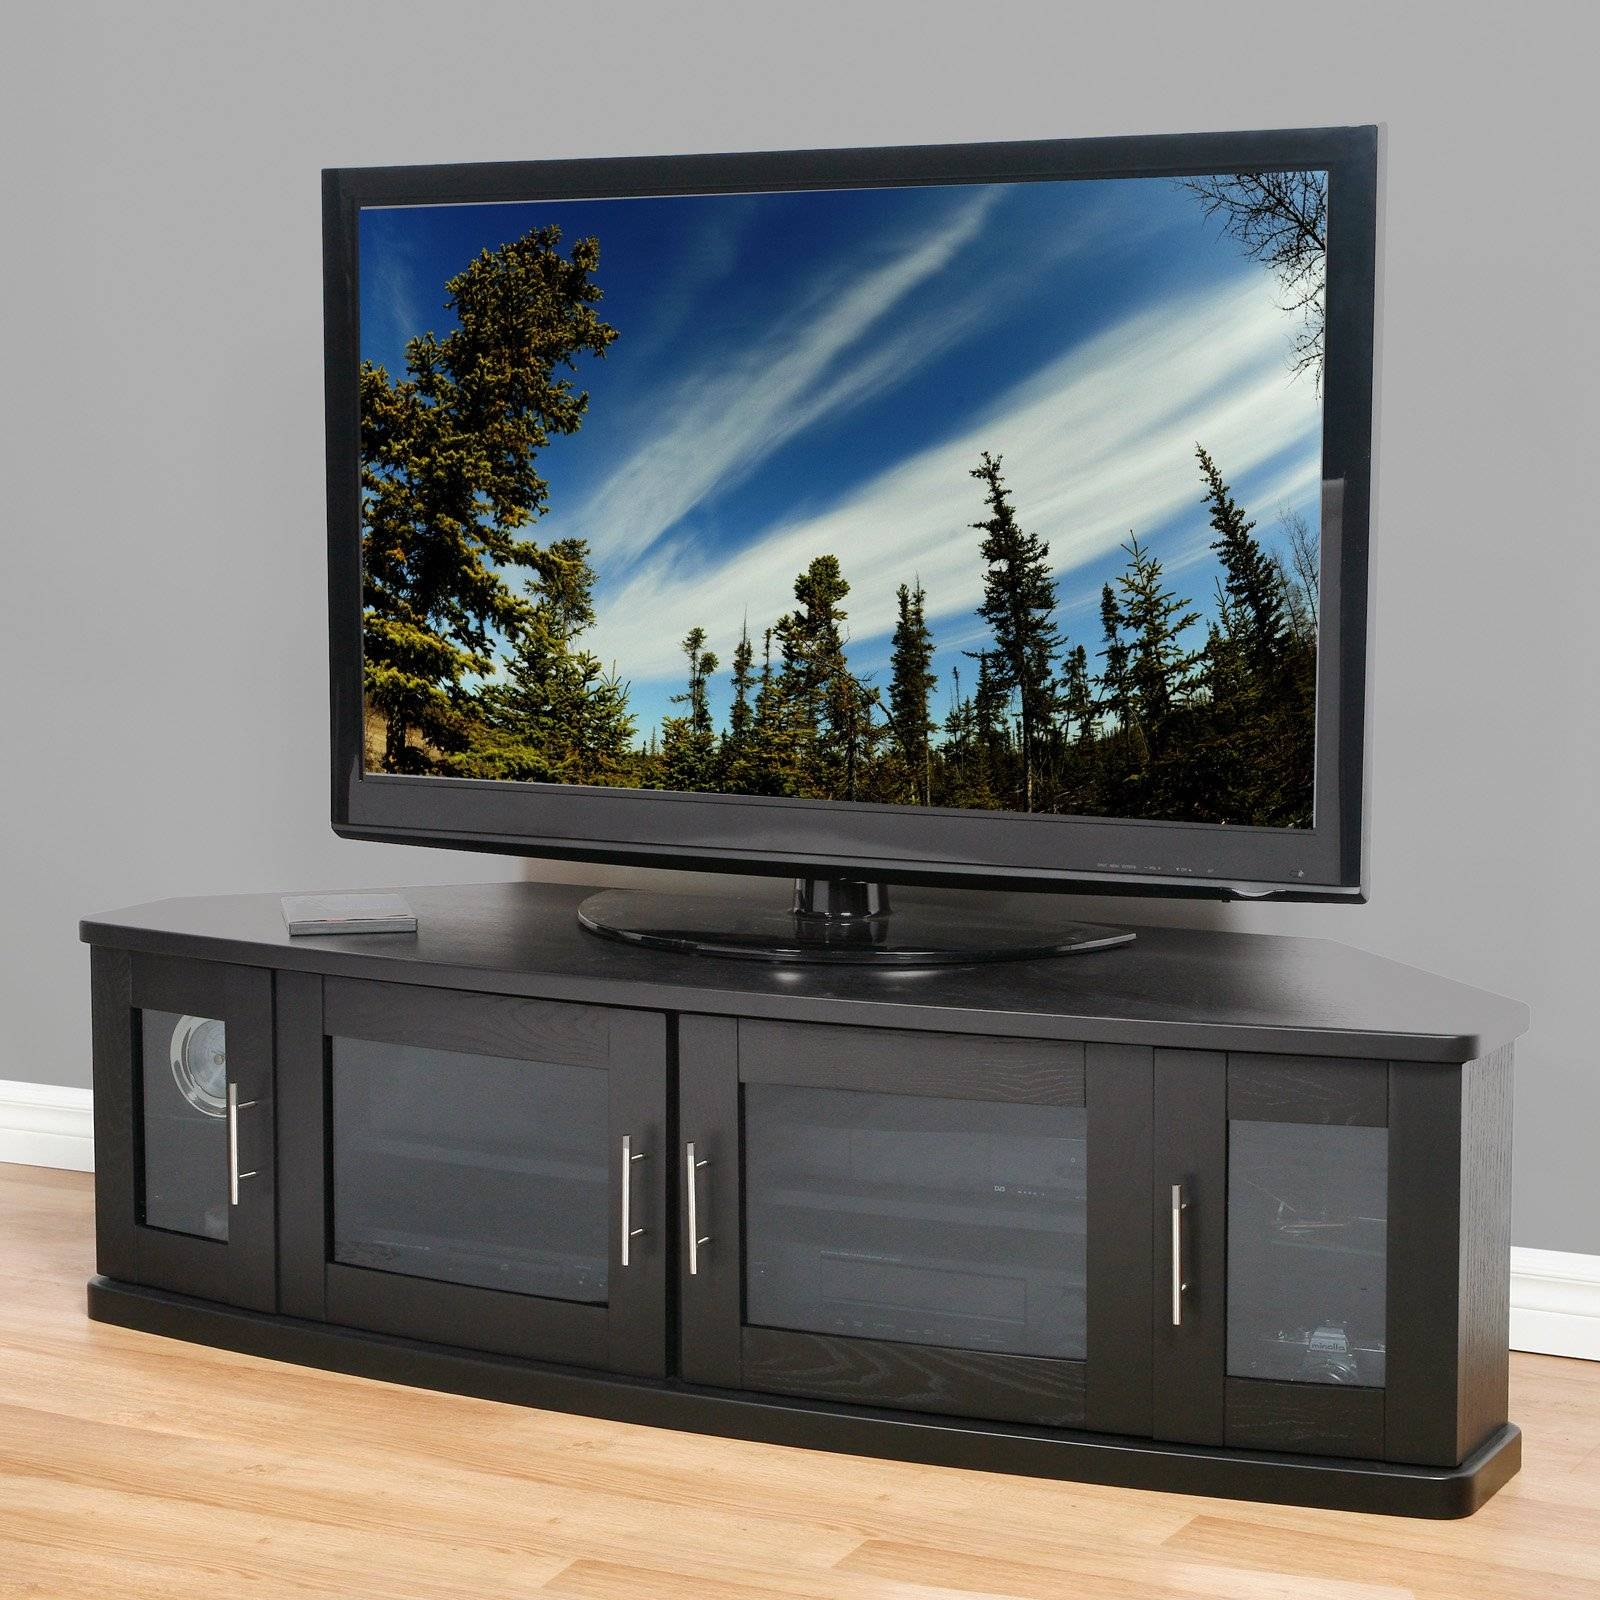 Best 15 Of Black Corner Tv Cabinets With Glass Doors